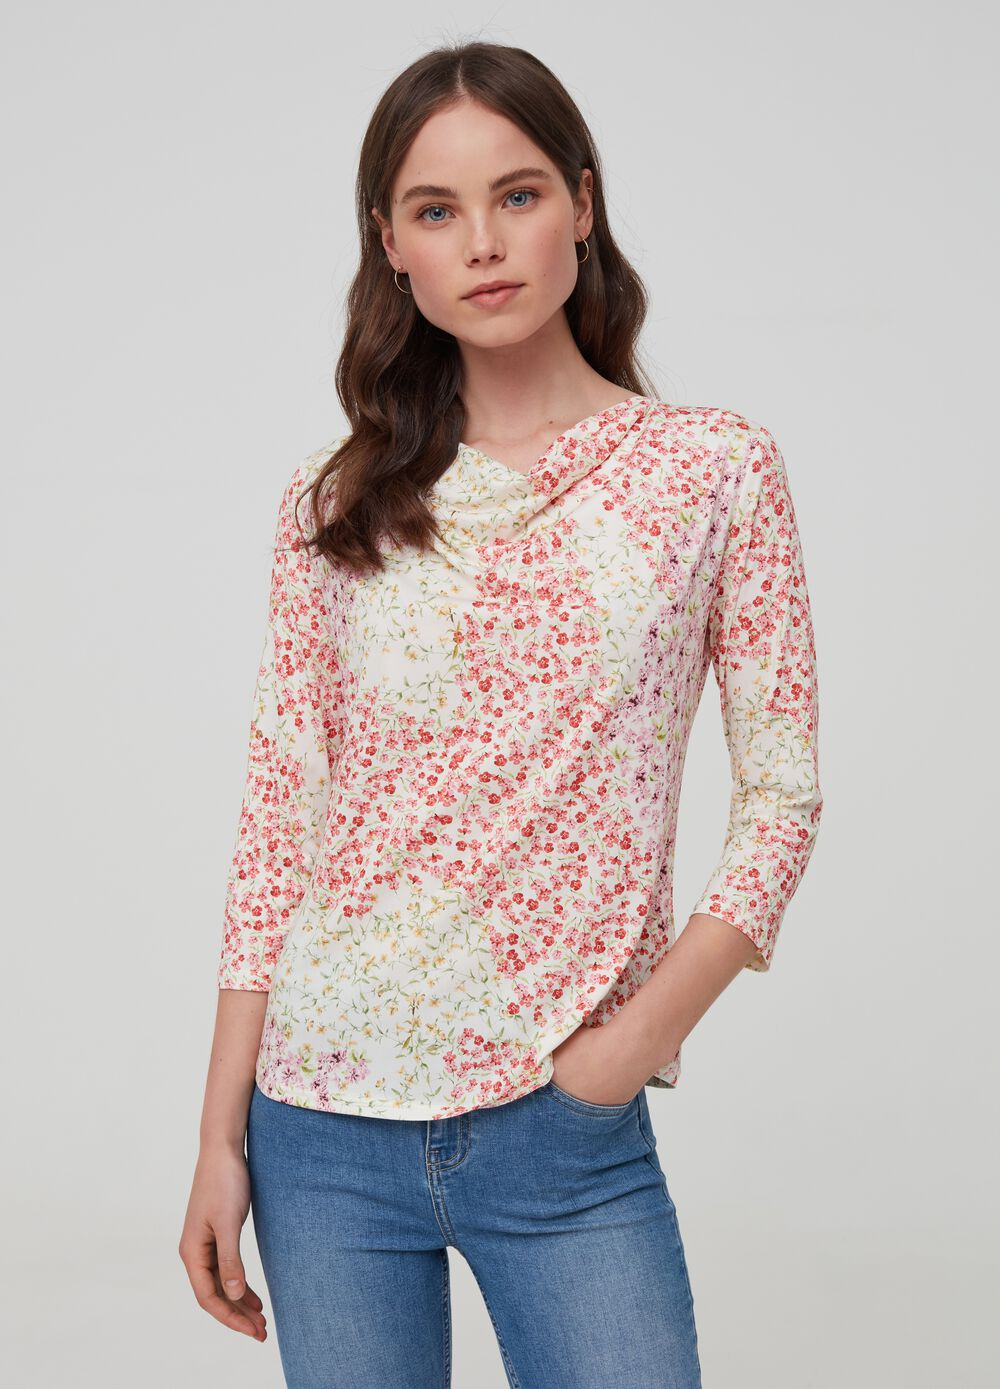 Floral stretch top